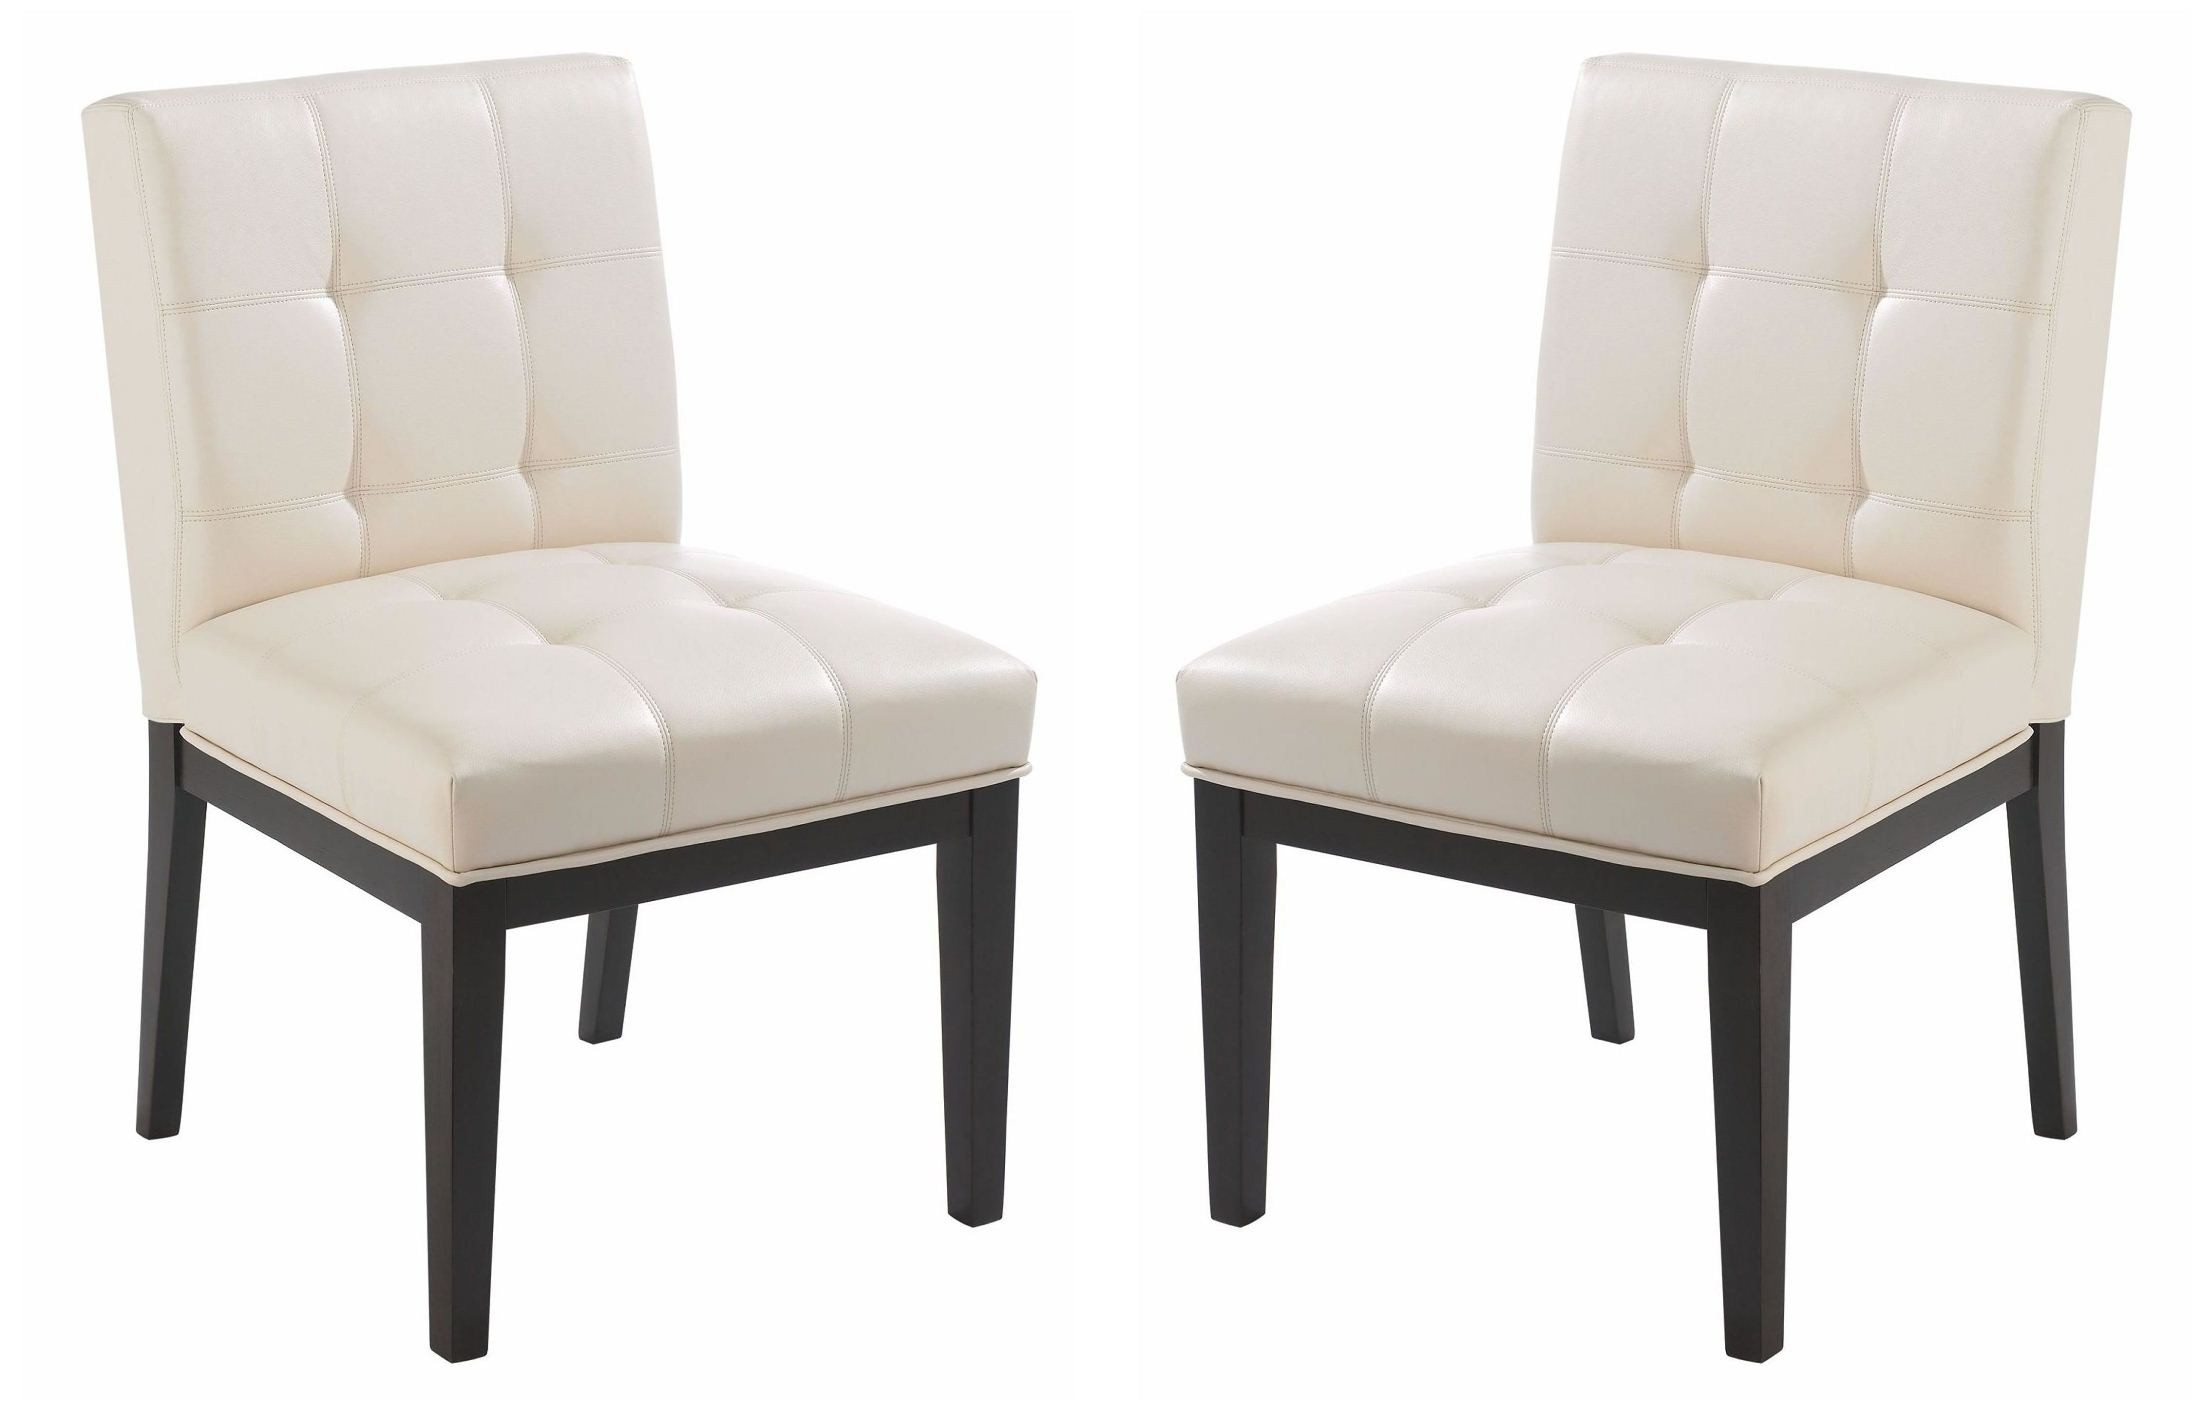 faux leather dining chairs beach chaise lounge felicia cream chair set of 2 from